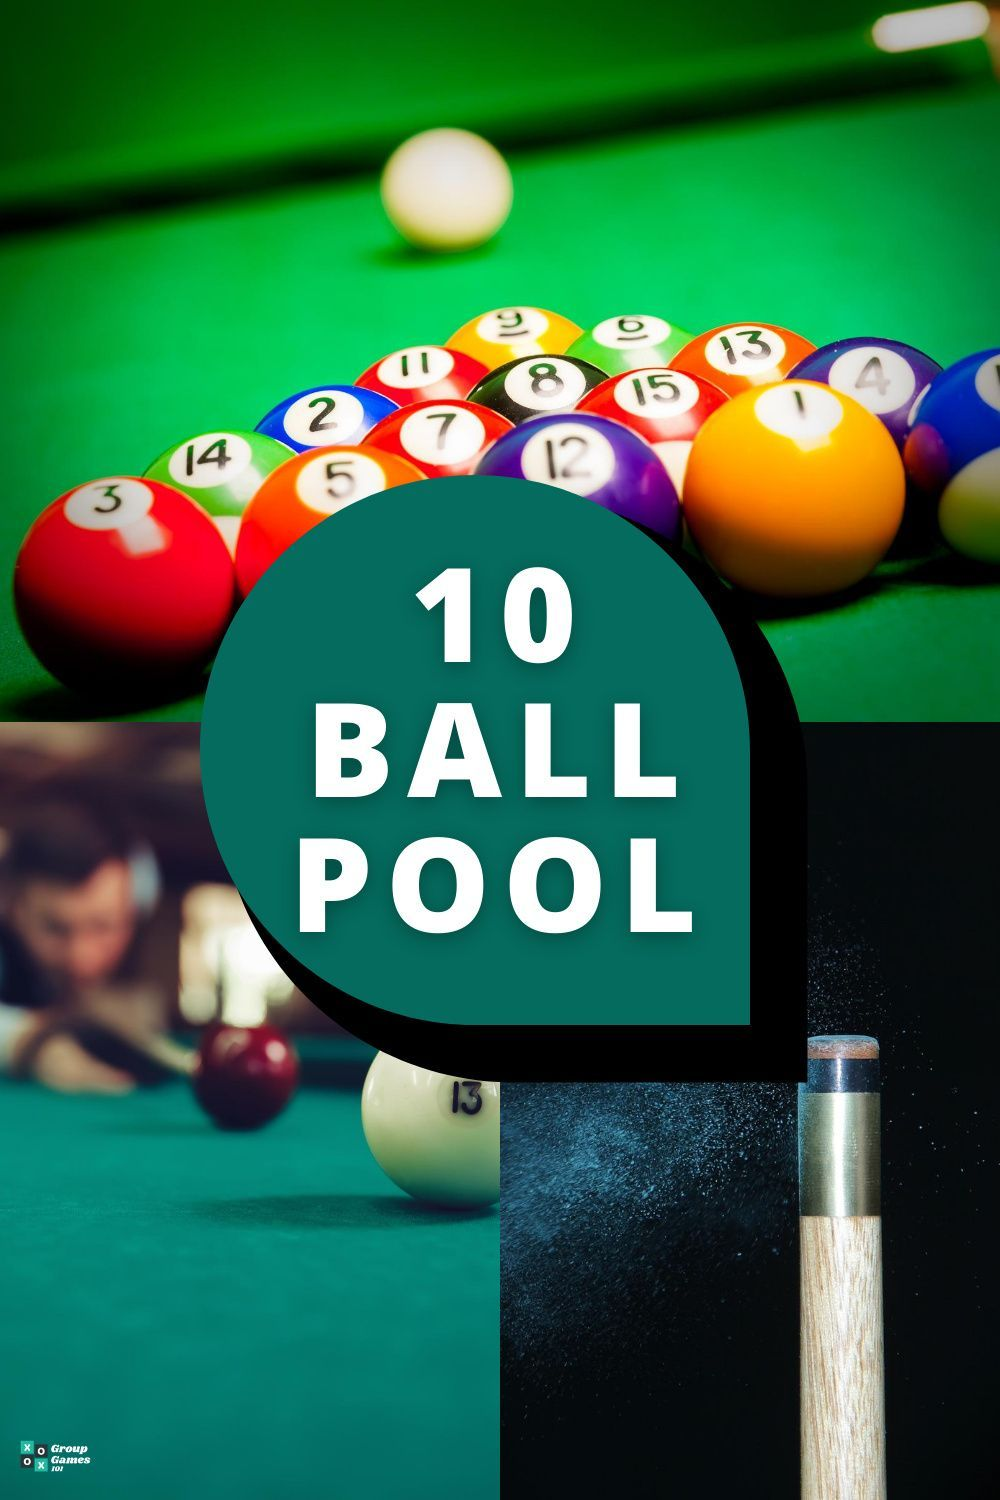 10 Ball Pool Learn How To Play In 2020 Pool Rules Bar Games Pool Balls